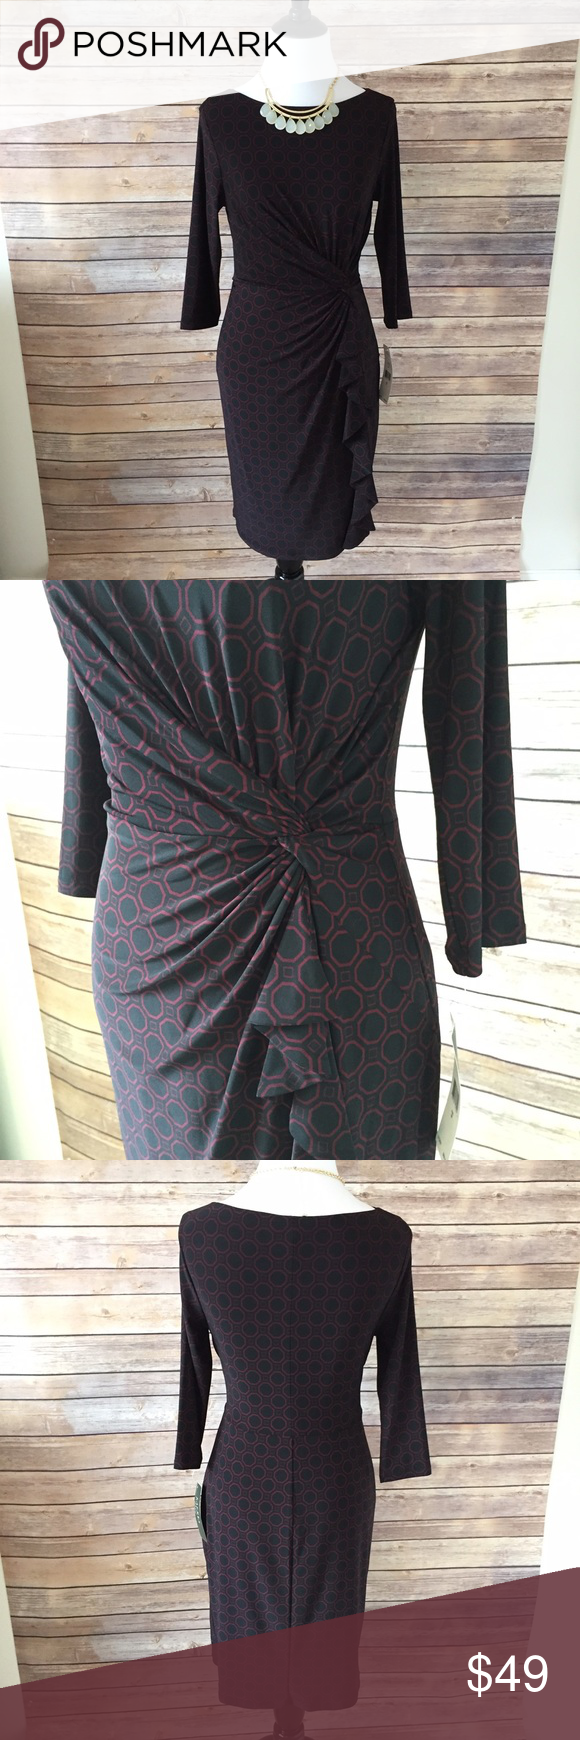 "⚡️FLASH SALE!⚡️ RALPH LAUREN Sheath Dress NWT Look slim and chic in this geo-print sheath dress from Ralph Lauren. 3/4 length sleeve lined cocktail dress. Size 2 petite. Machine wash. 95% polyester, 5% elastane. Flattering side swept fabric synch and ruffles down the left side. Pull on dress. Approx. 15"" bust flat, 12"" waist, and 35"" length. Dress falls approx. above the knee. New with tags. (Necklace also available). Ralph Lauren Dresses Midi"